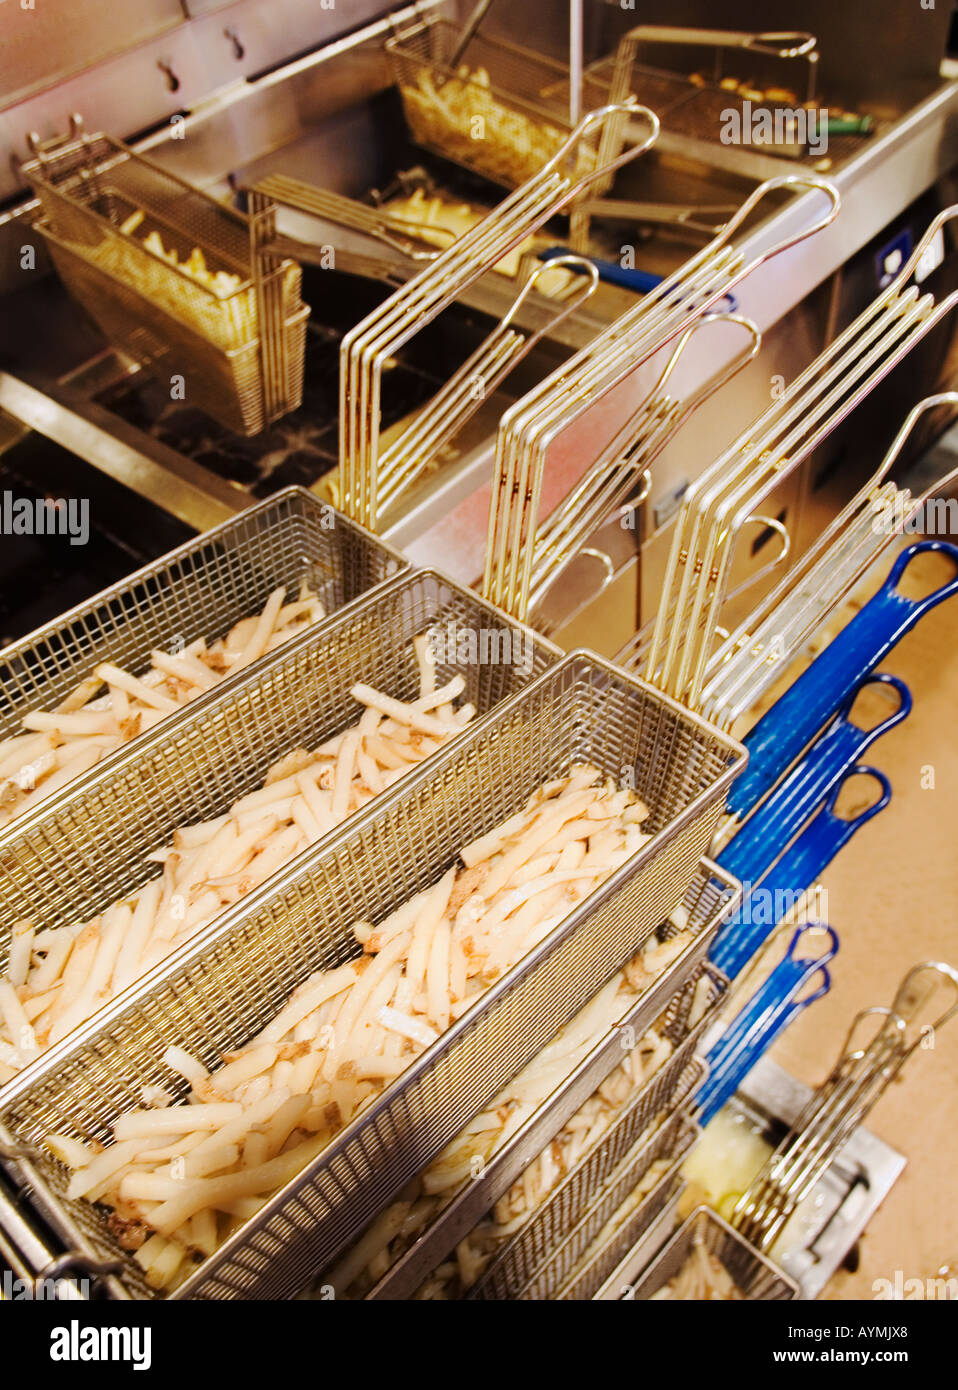 french fries in commercial kitchen - Stock Image